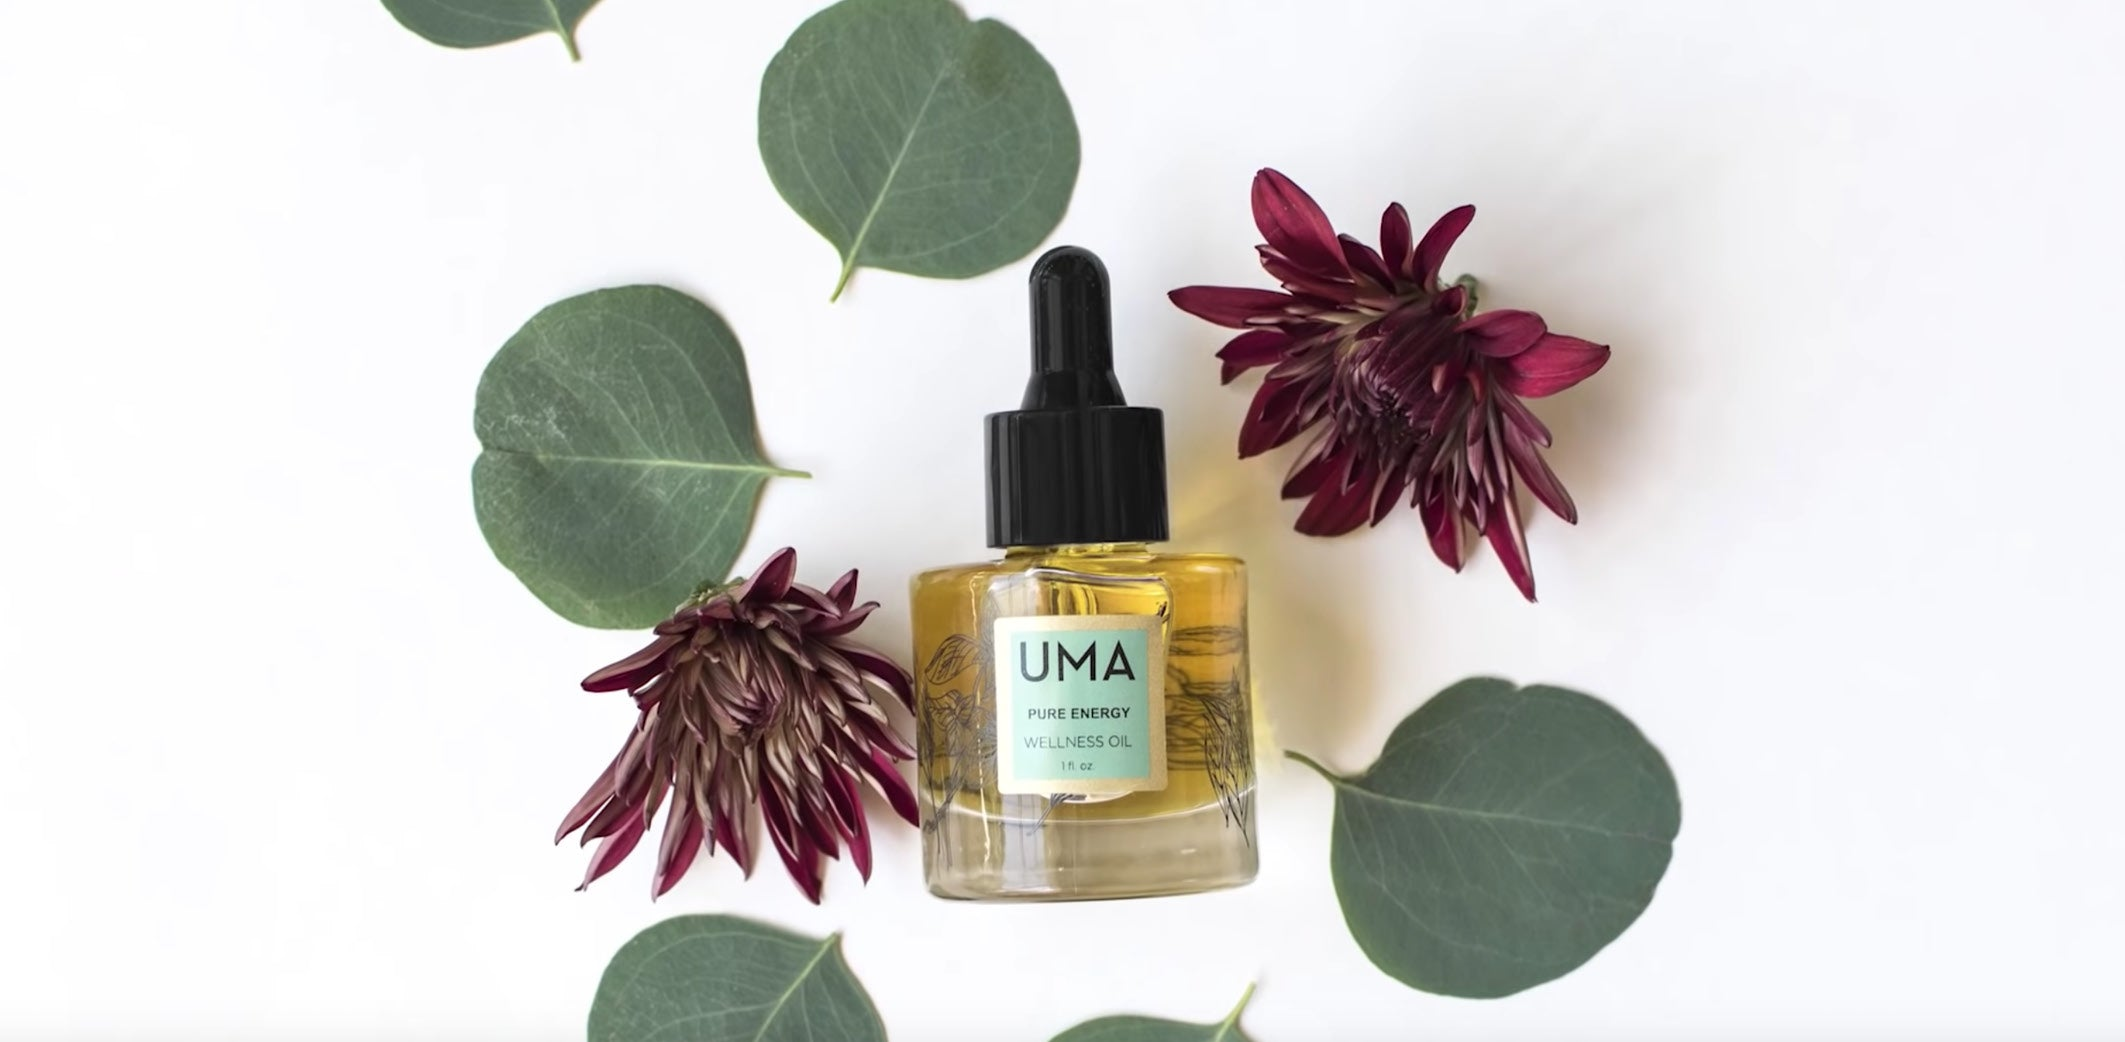 UMA OILS - 100% Organic, Natural, Ethical and Vegan Beauty